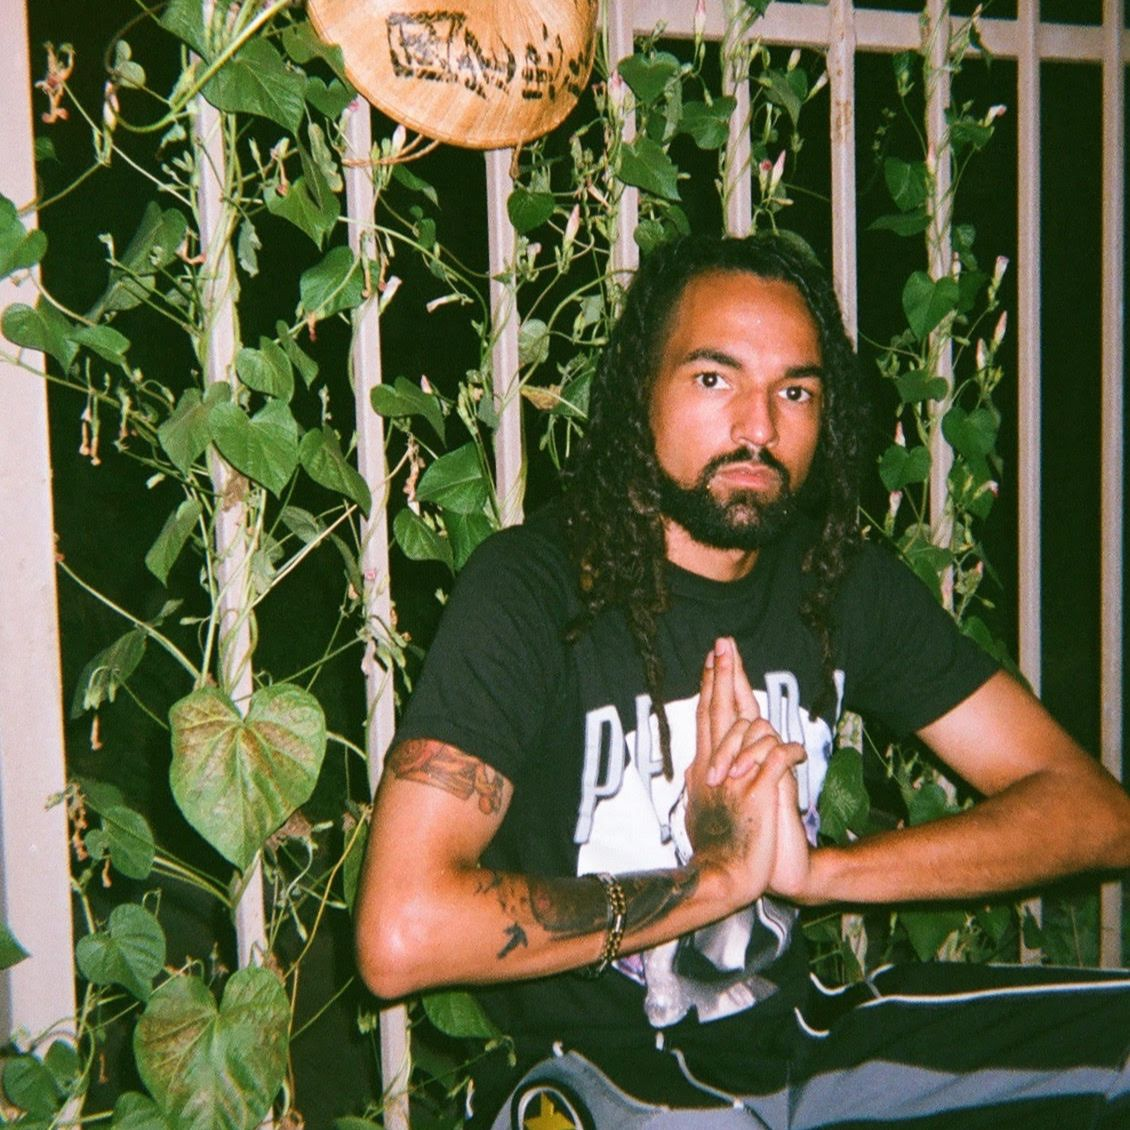 Hear Moreno Valley's producer Biiig Stretch's latest track 'P-laxxed' inspired by his cat – GRUNGECAKE